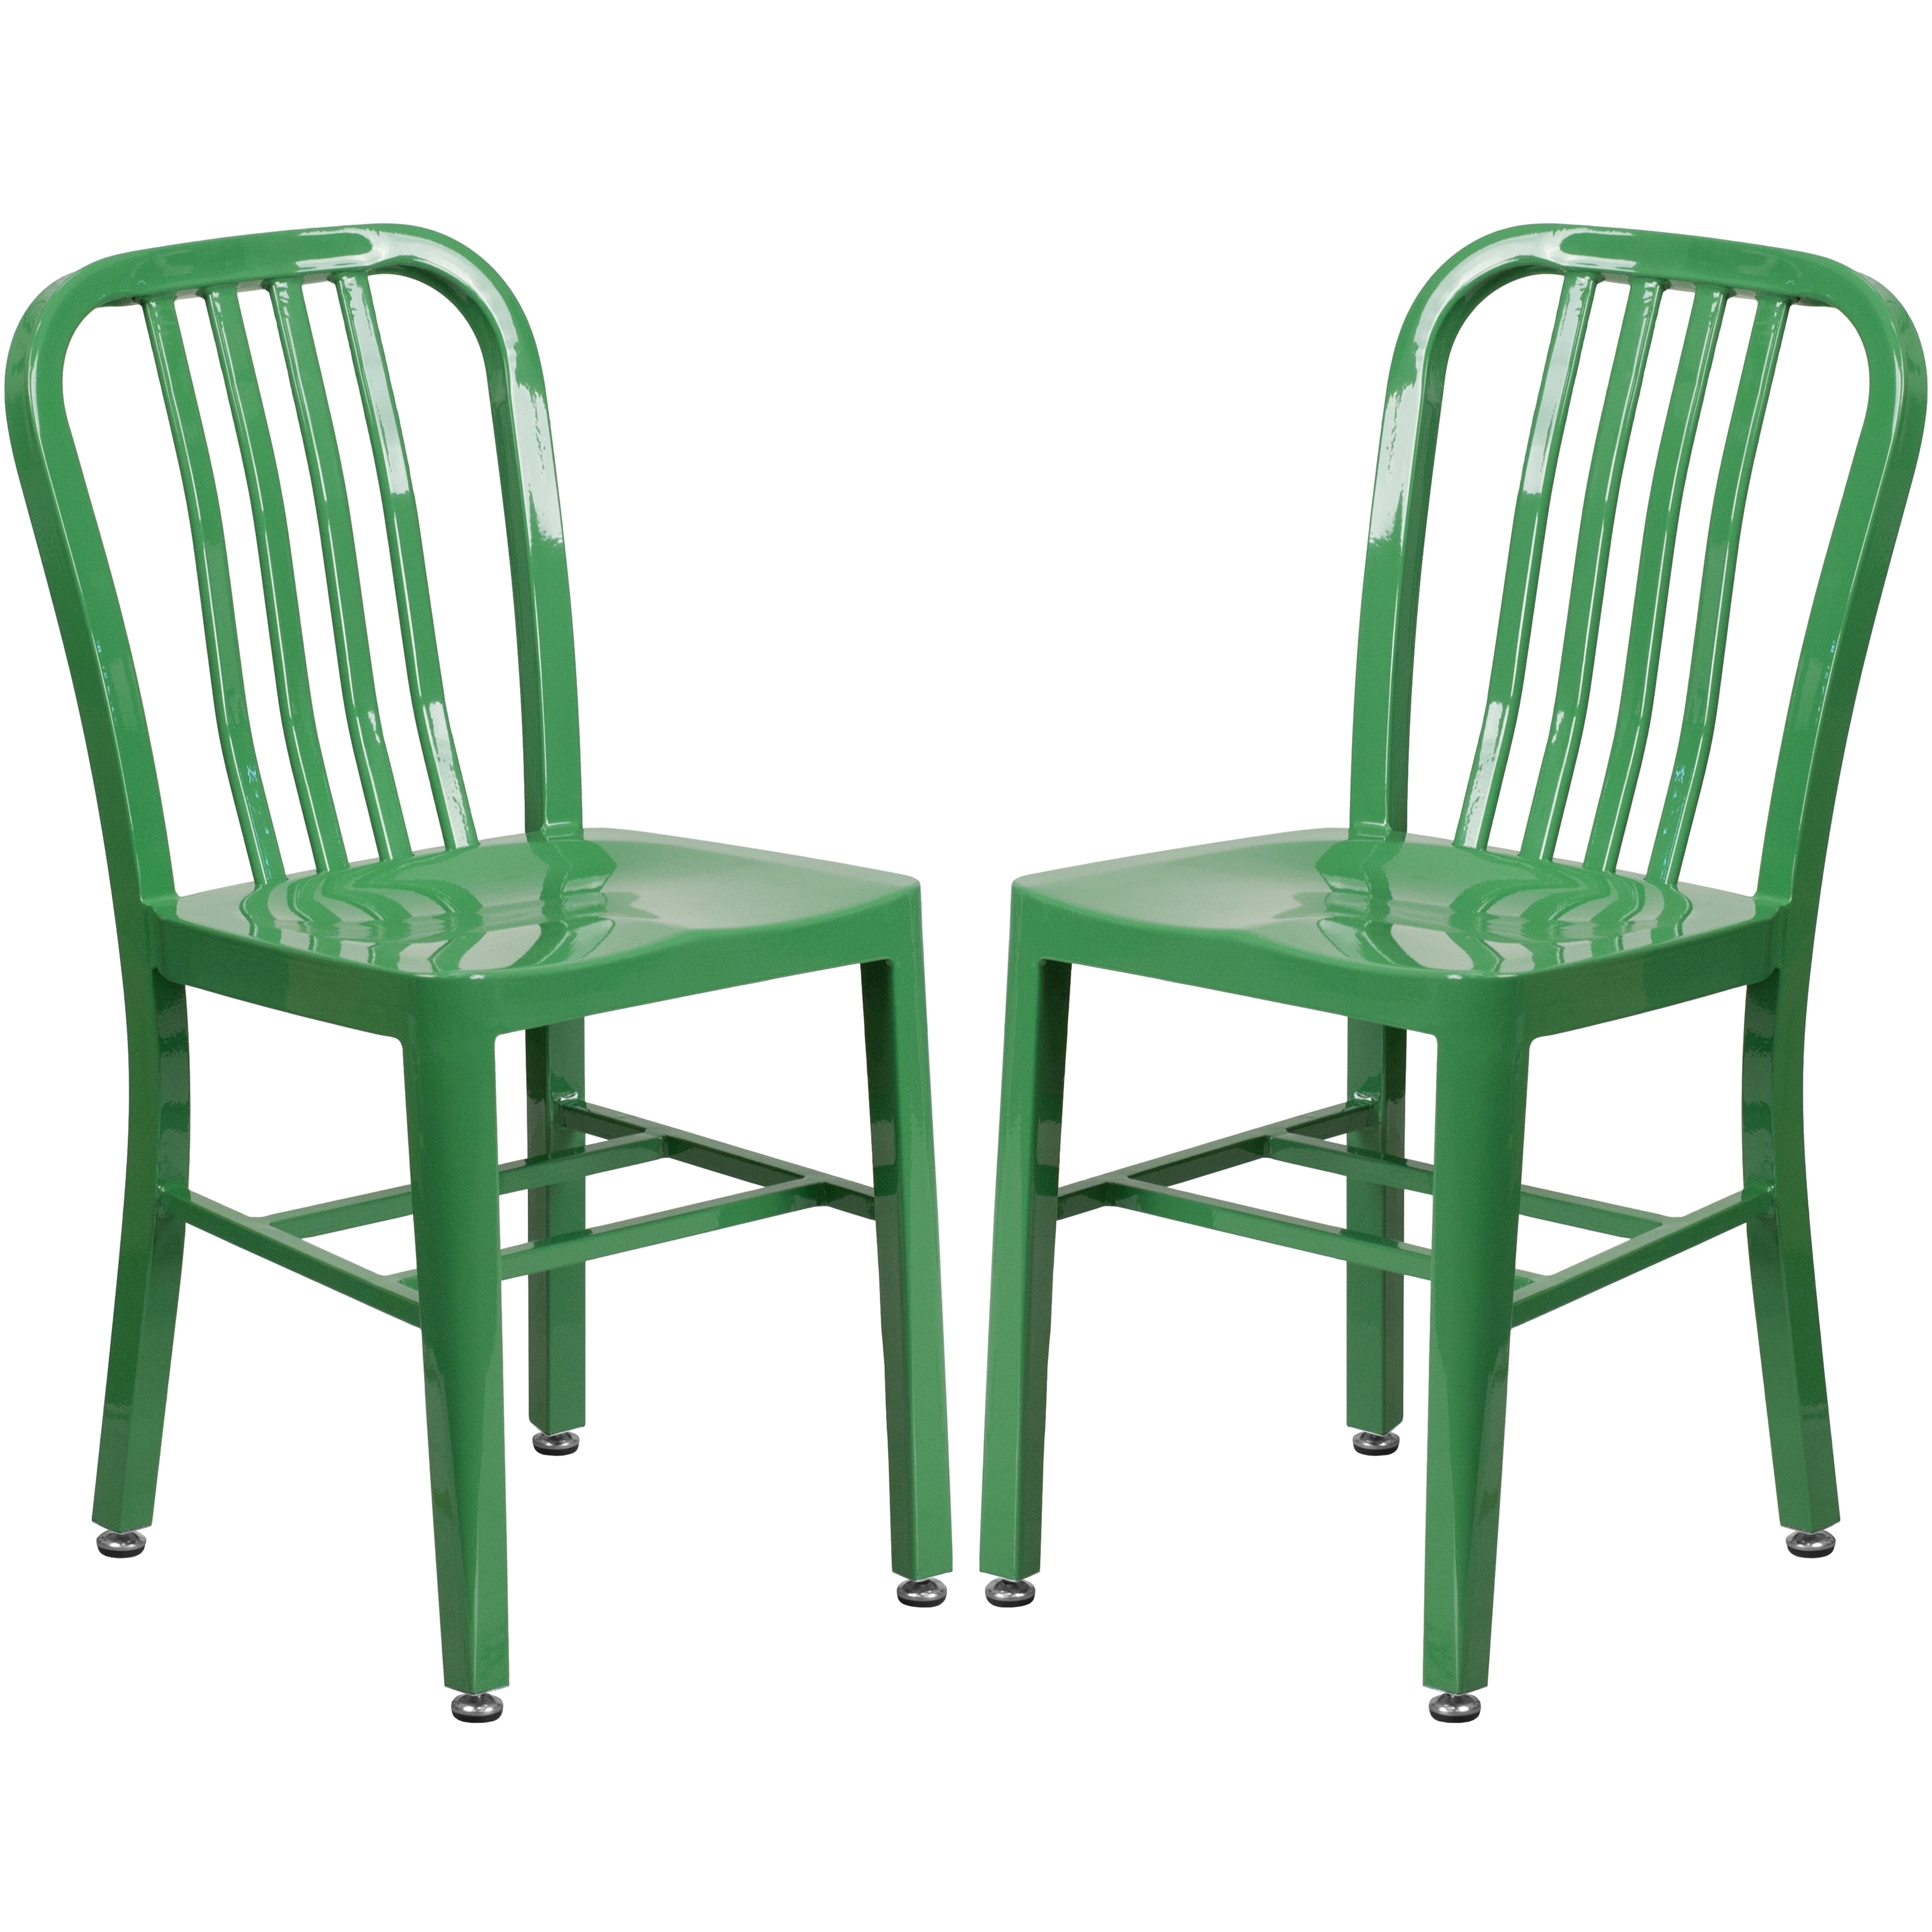 Industrial Design Green Slat Back Metal Chair (2 Chairs)